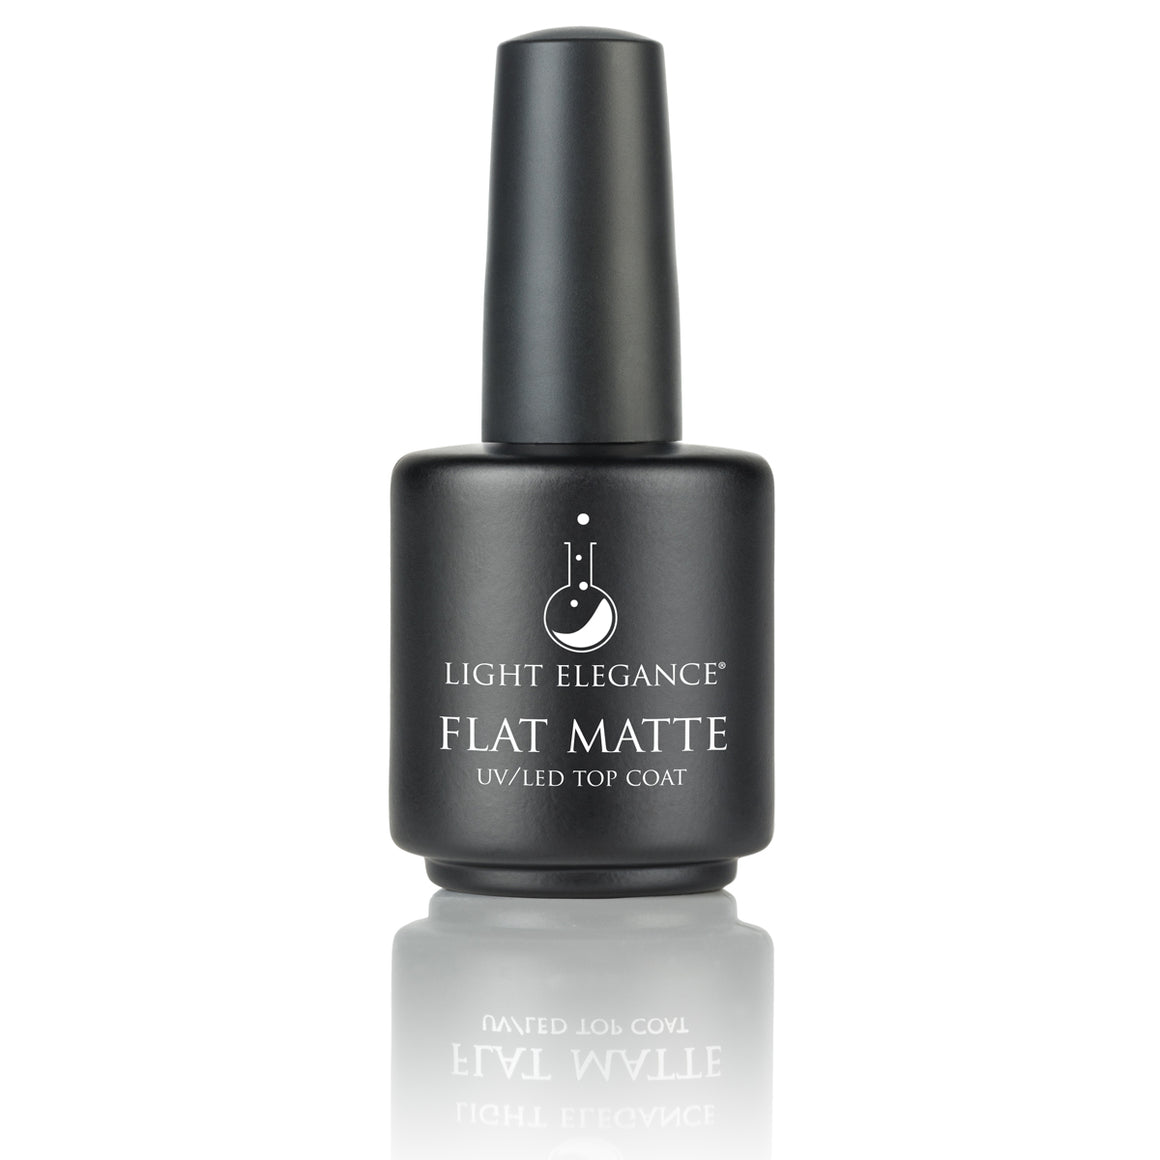 Flat Matte UV/LED Top Coat